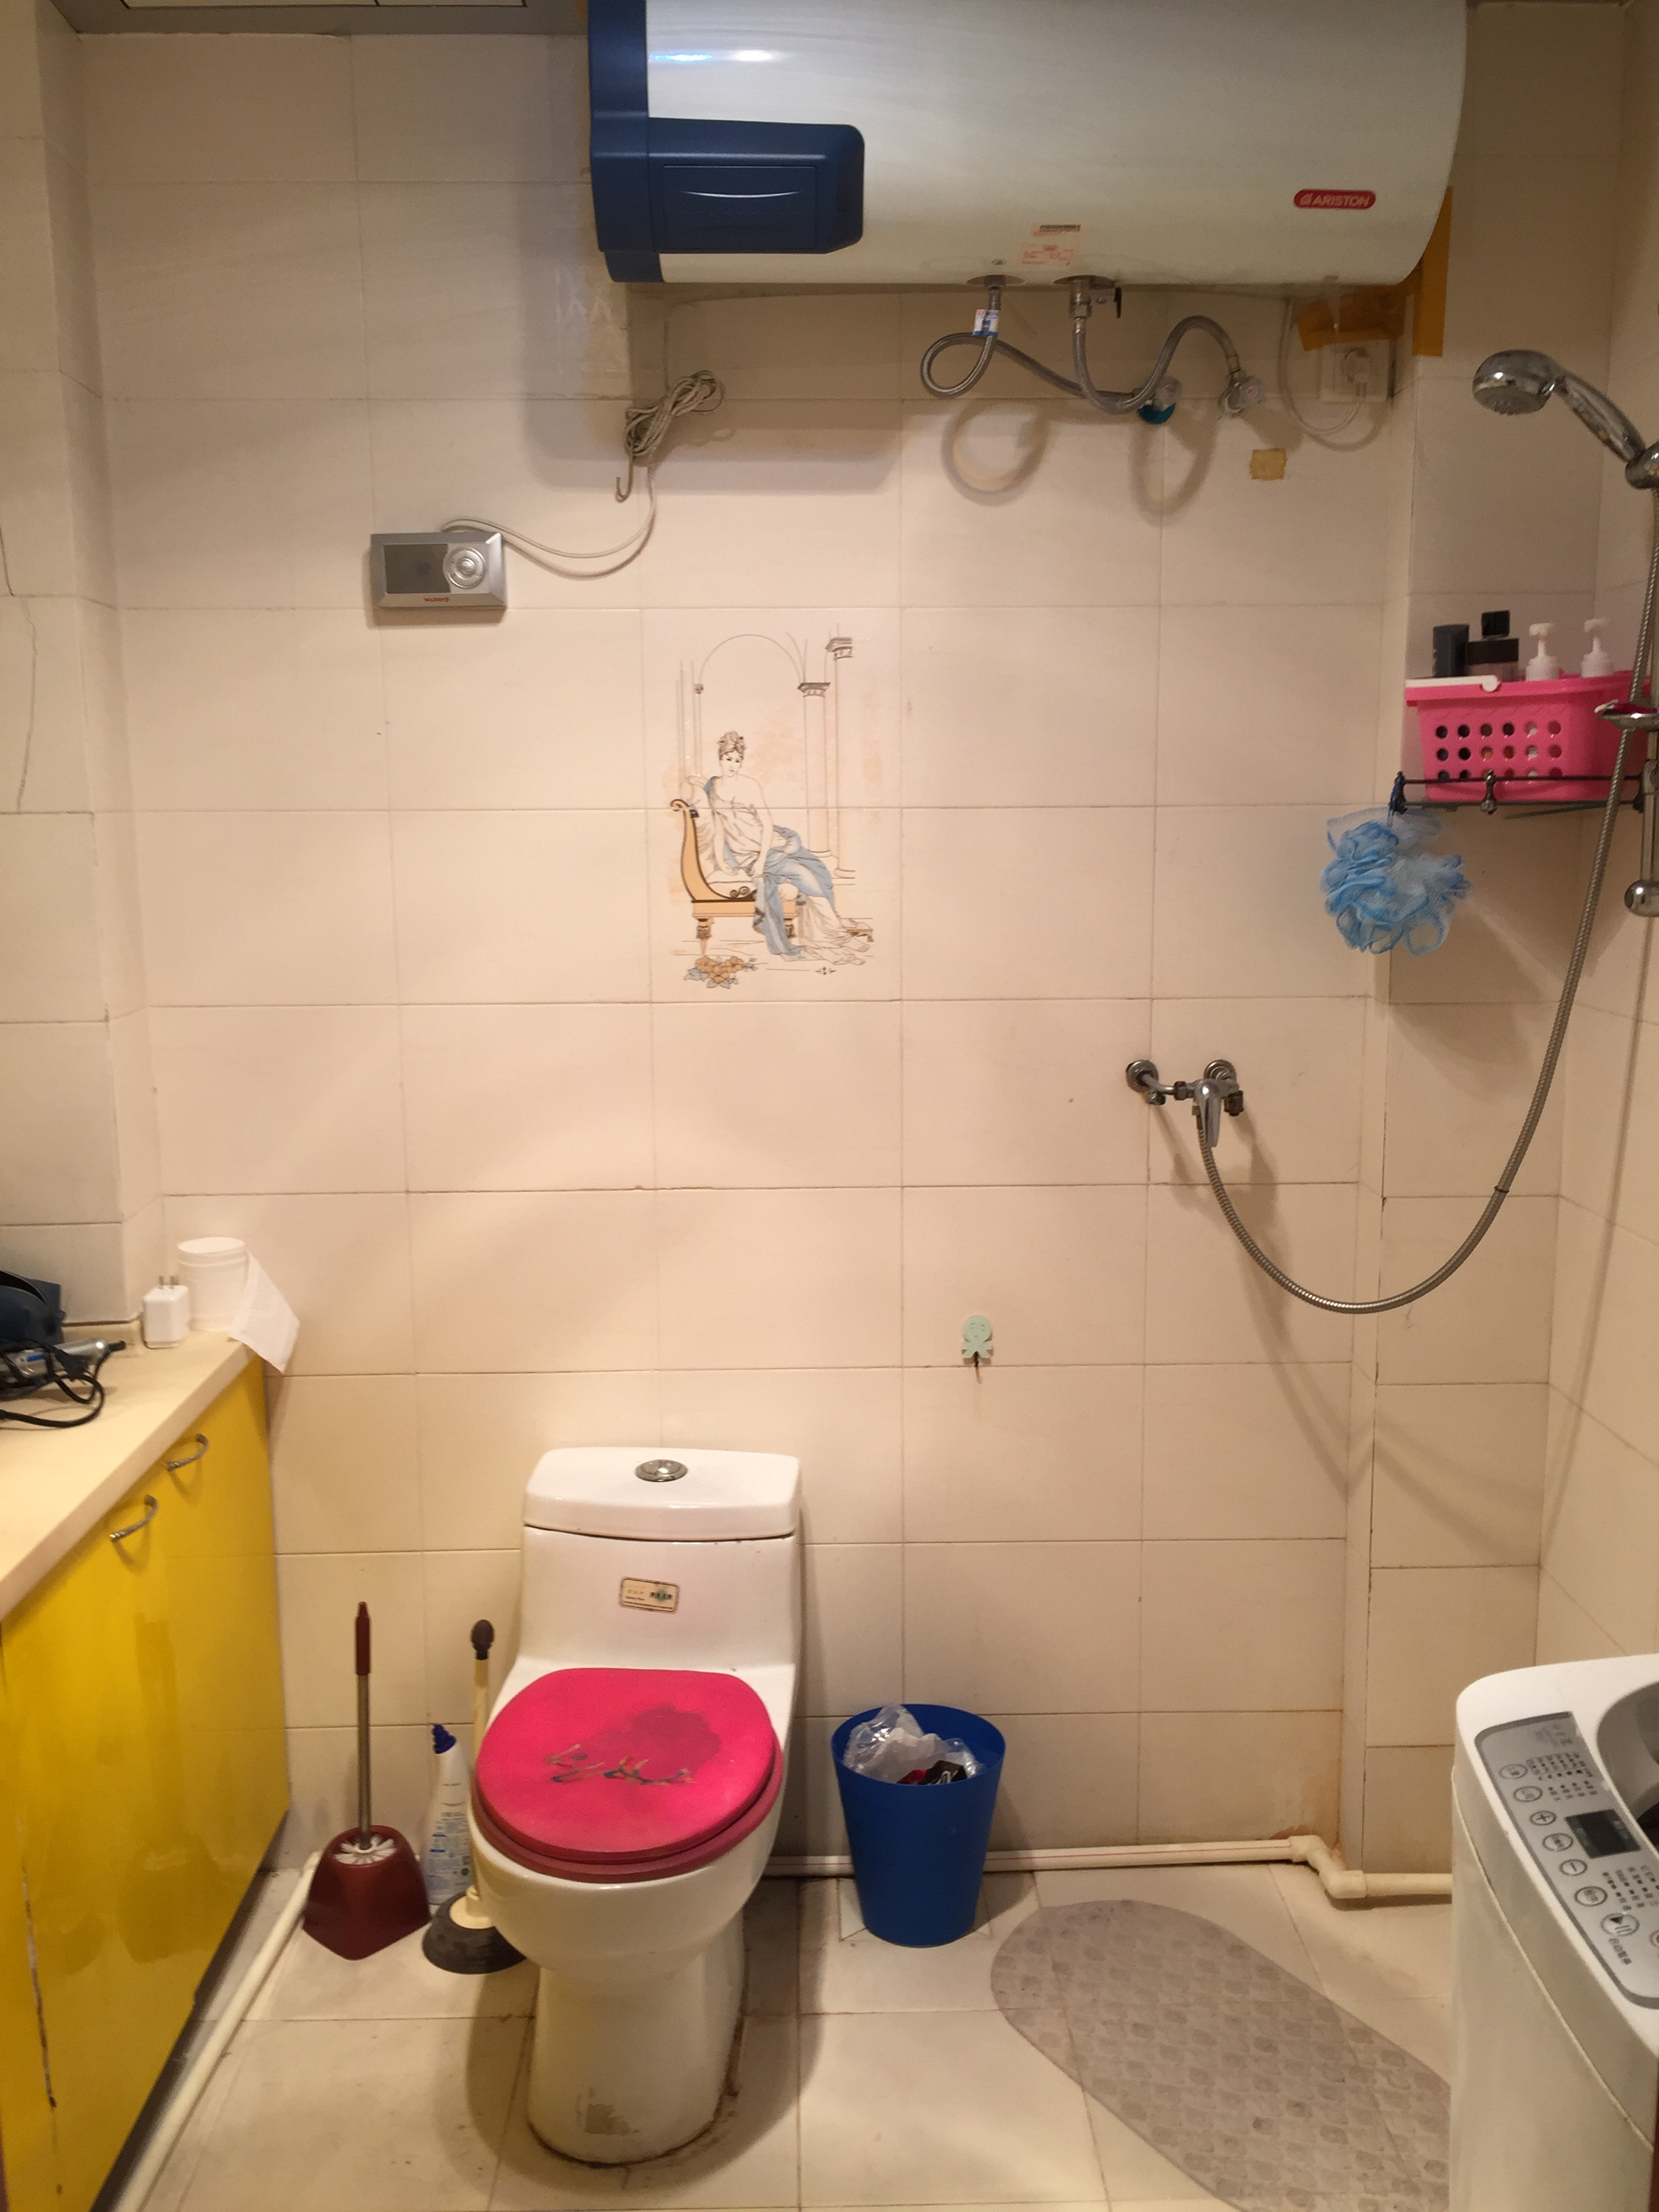 Bathroom in Chinese apartment.